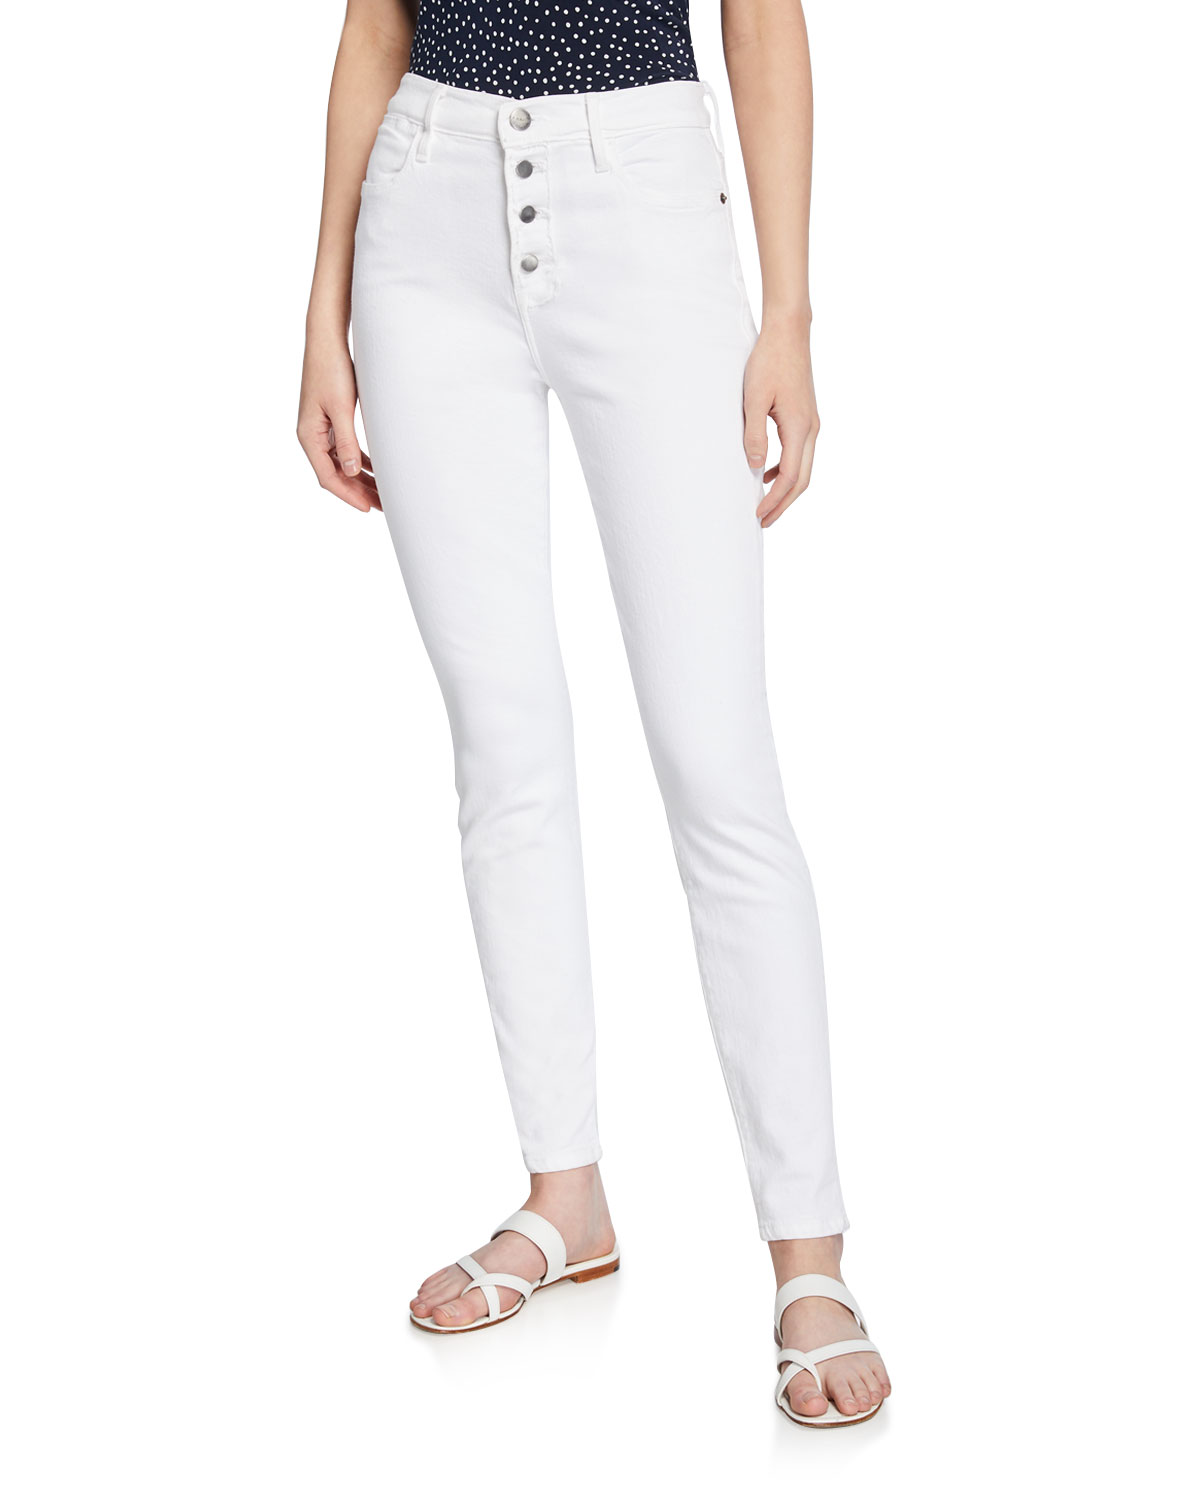 Frame Jeans LE HIGH SKINNY JEANS WITH BUTTON FLY